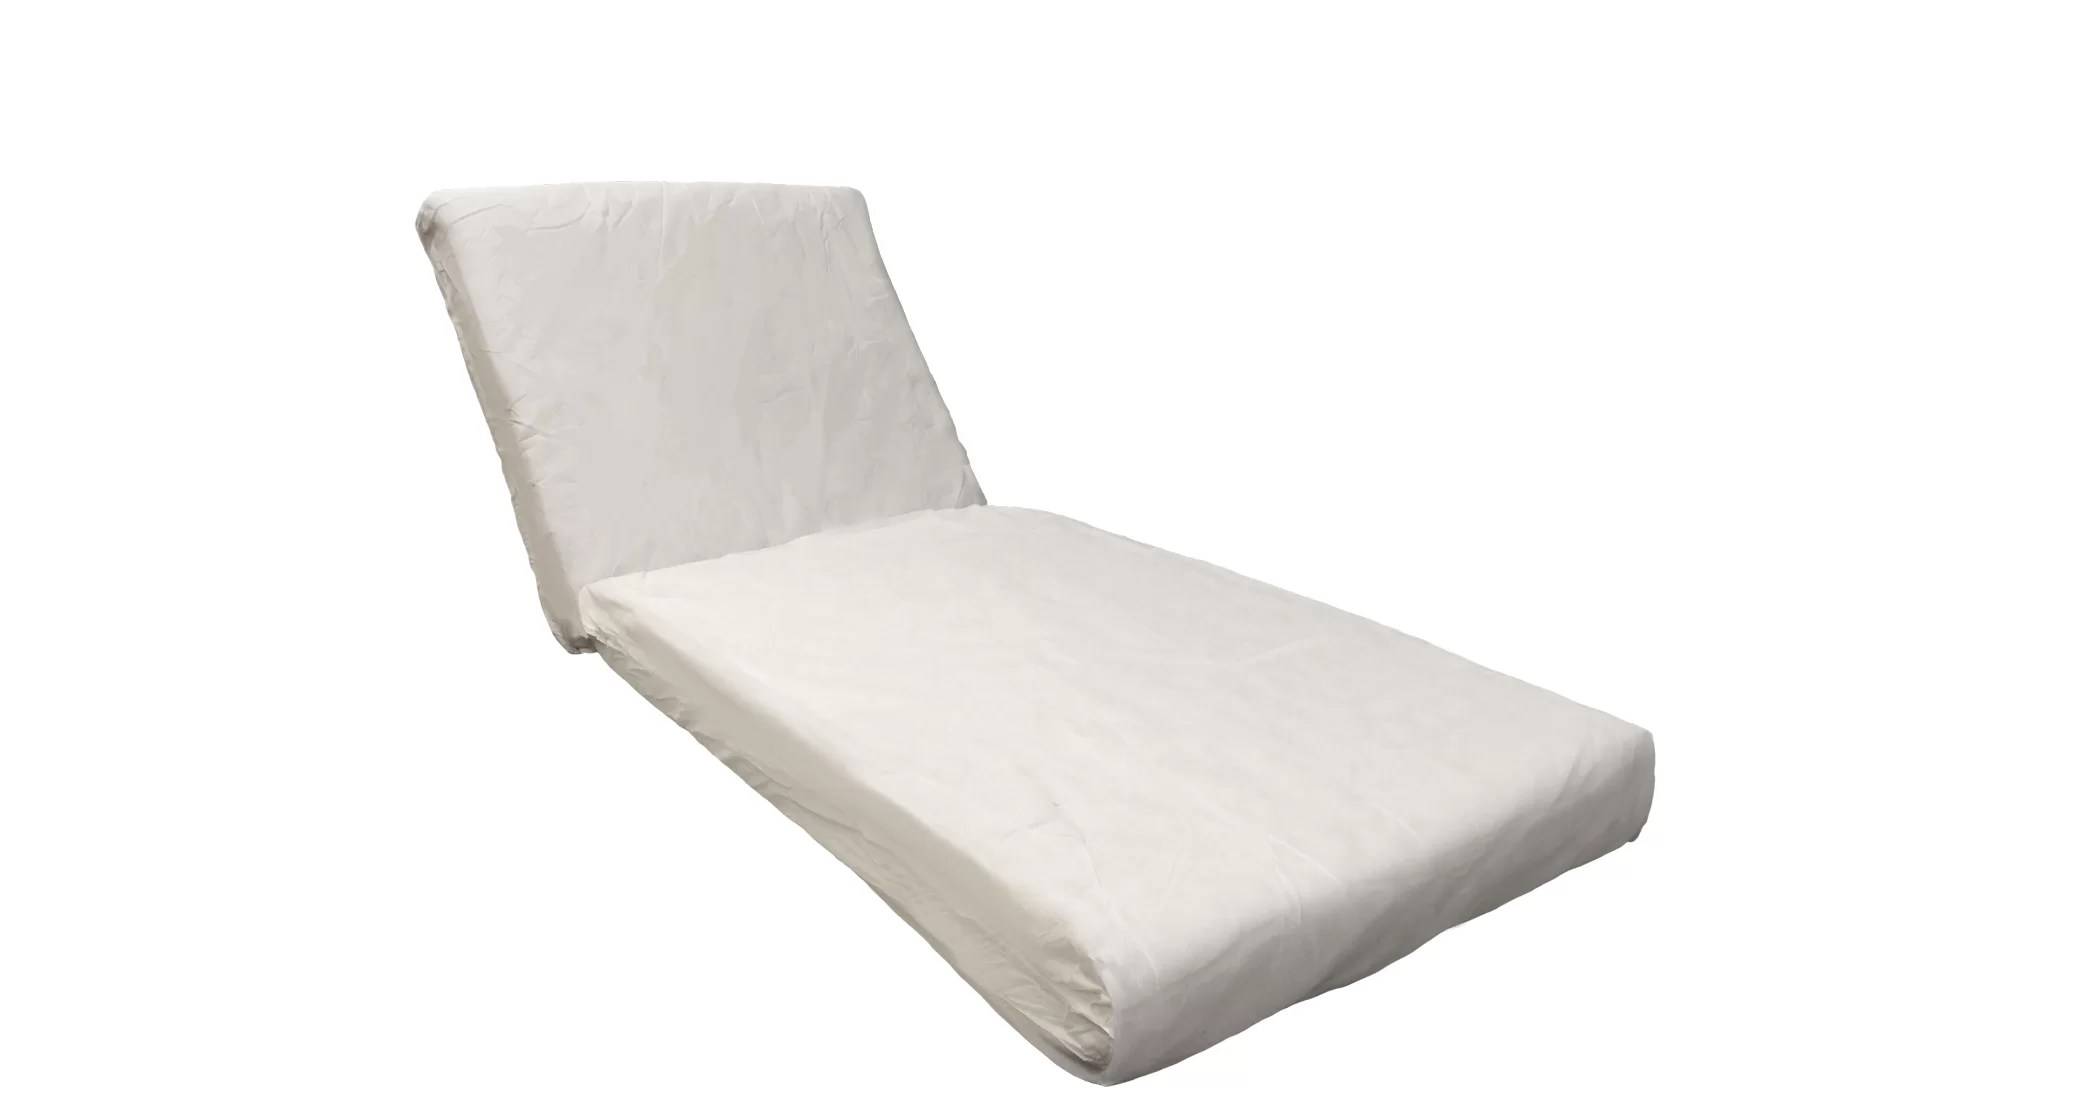 2 piece outdoor chaise lounge cushion set